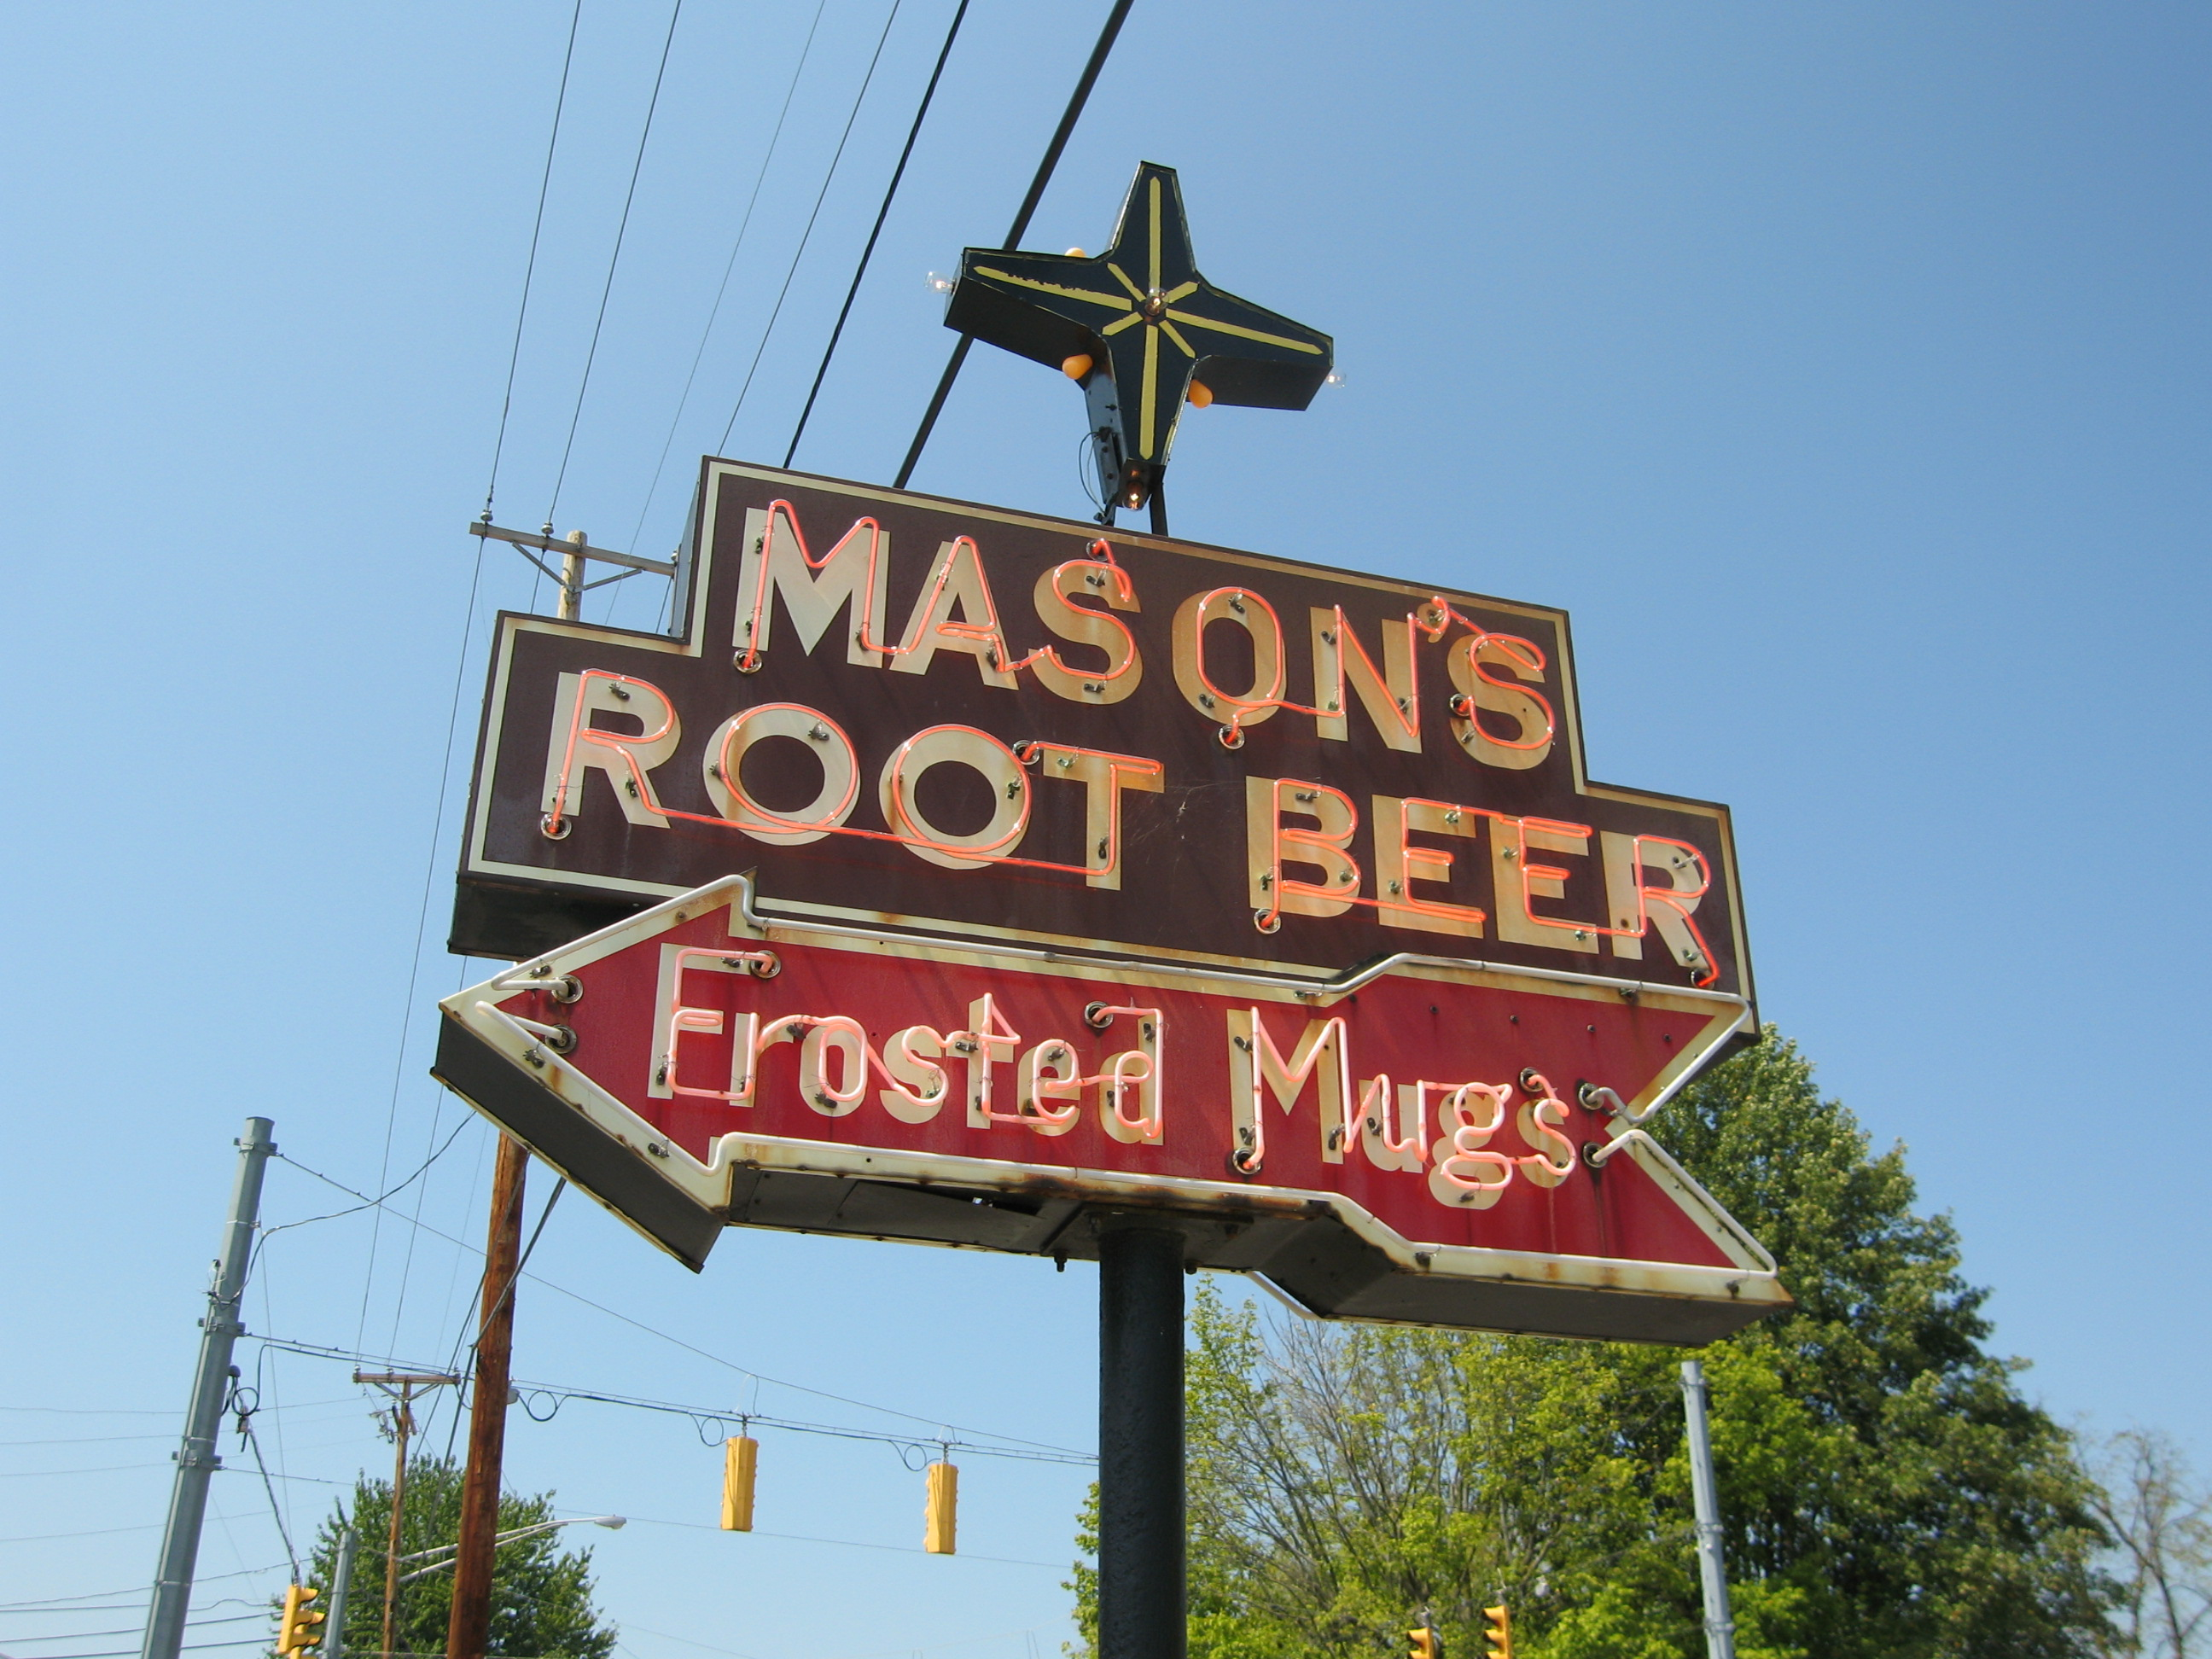 Mason's Root Beer - 1201 East National Highway, Washington, Indiana U.S.A. - August 28, 2010